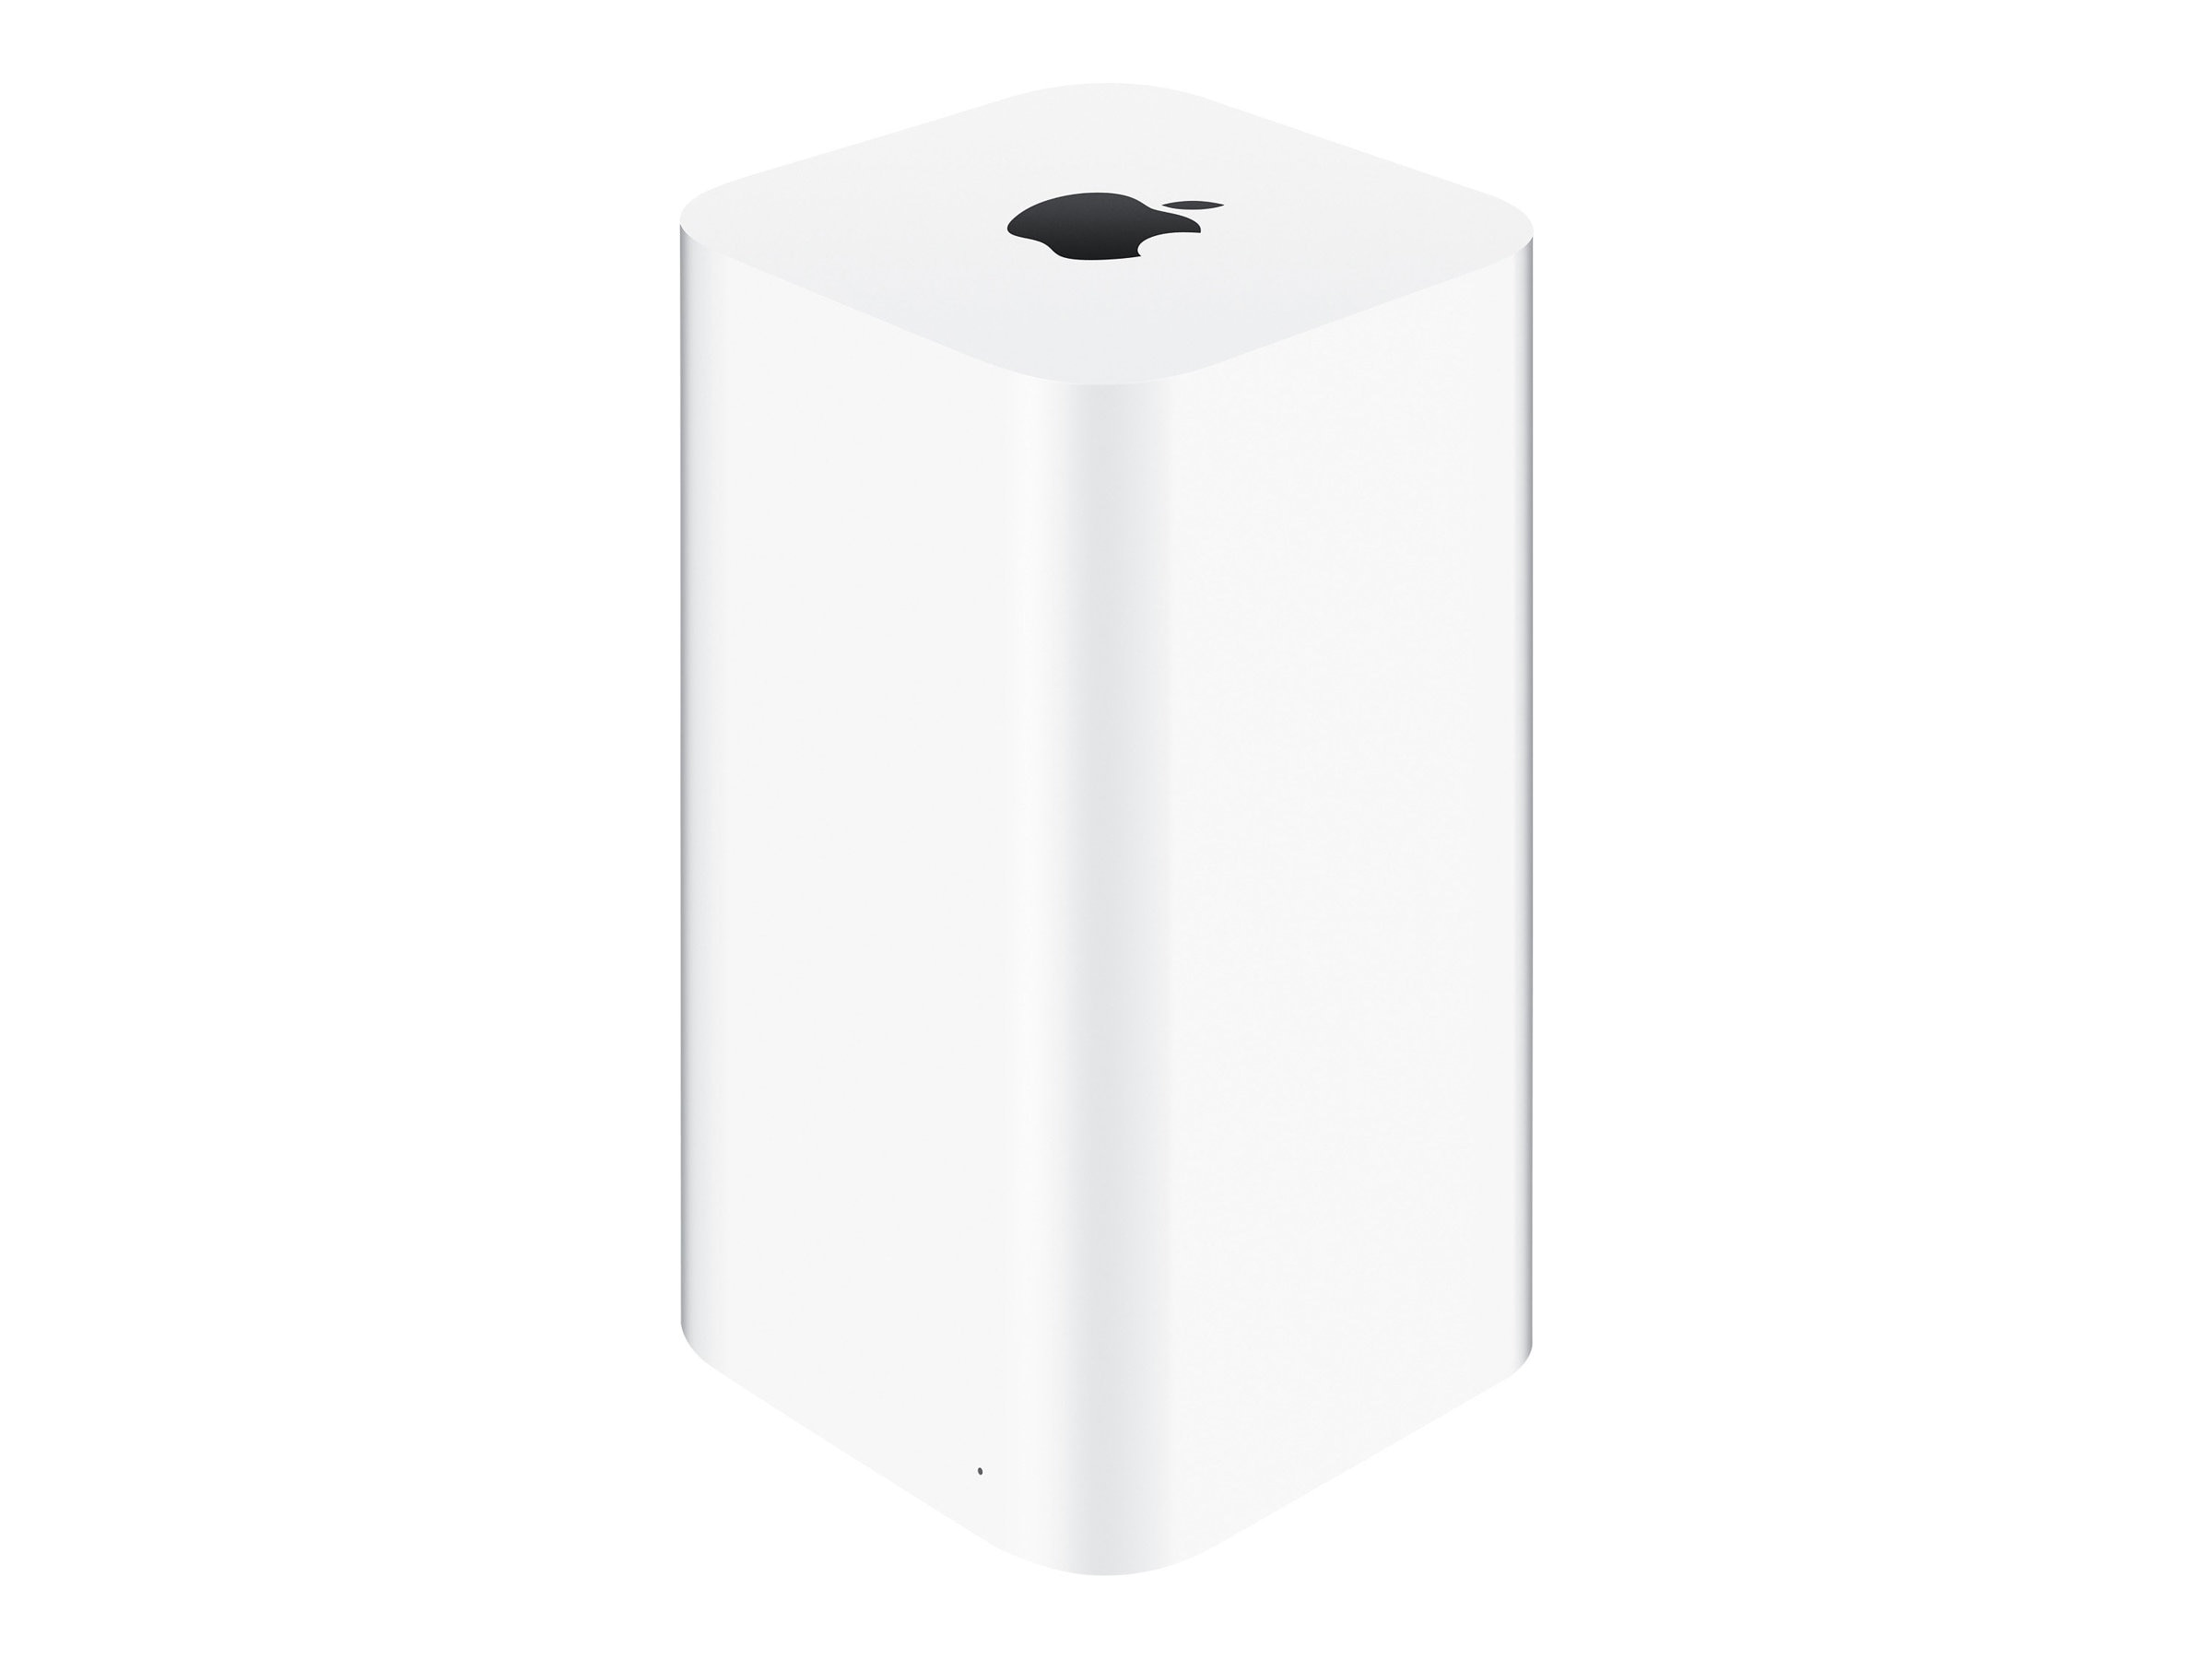 Apple AirPort Time Capsule - 3TB (802.11ac, 2013), ME182LL/A, 15903325, Network Attached Storage